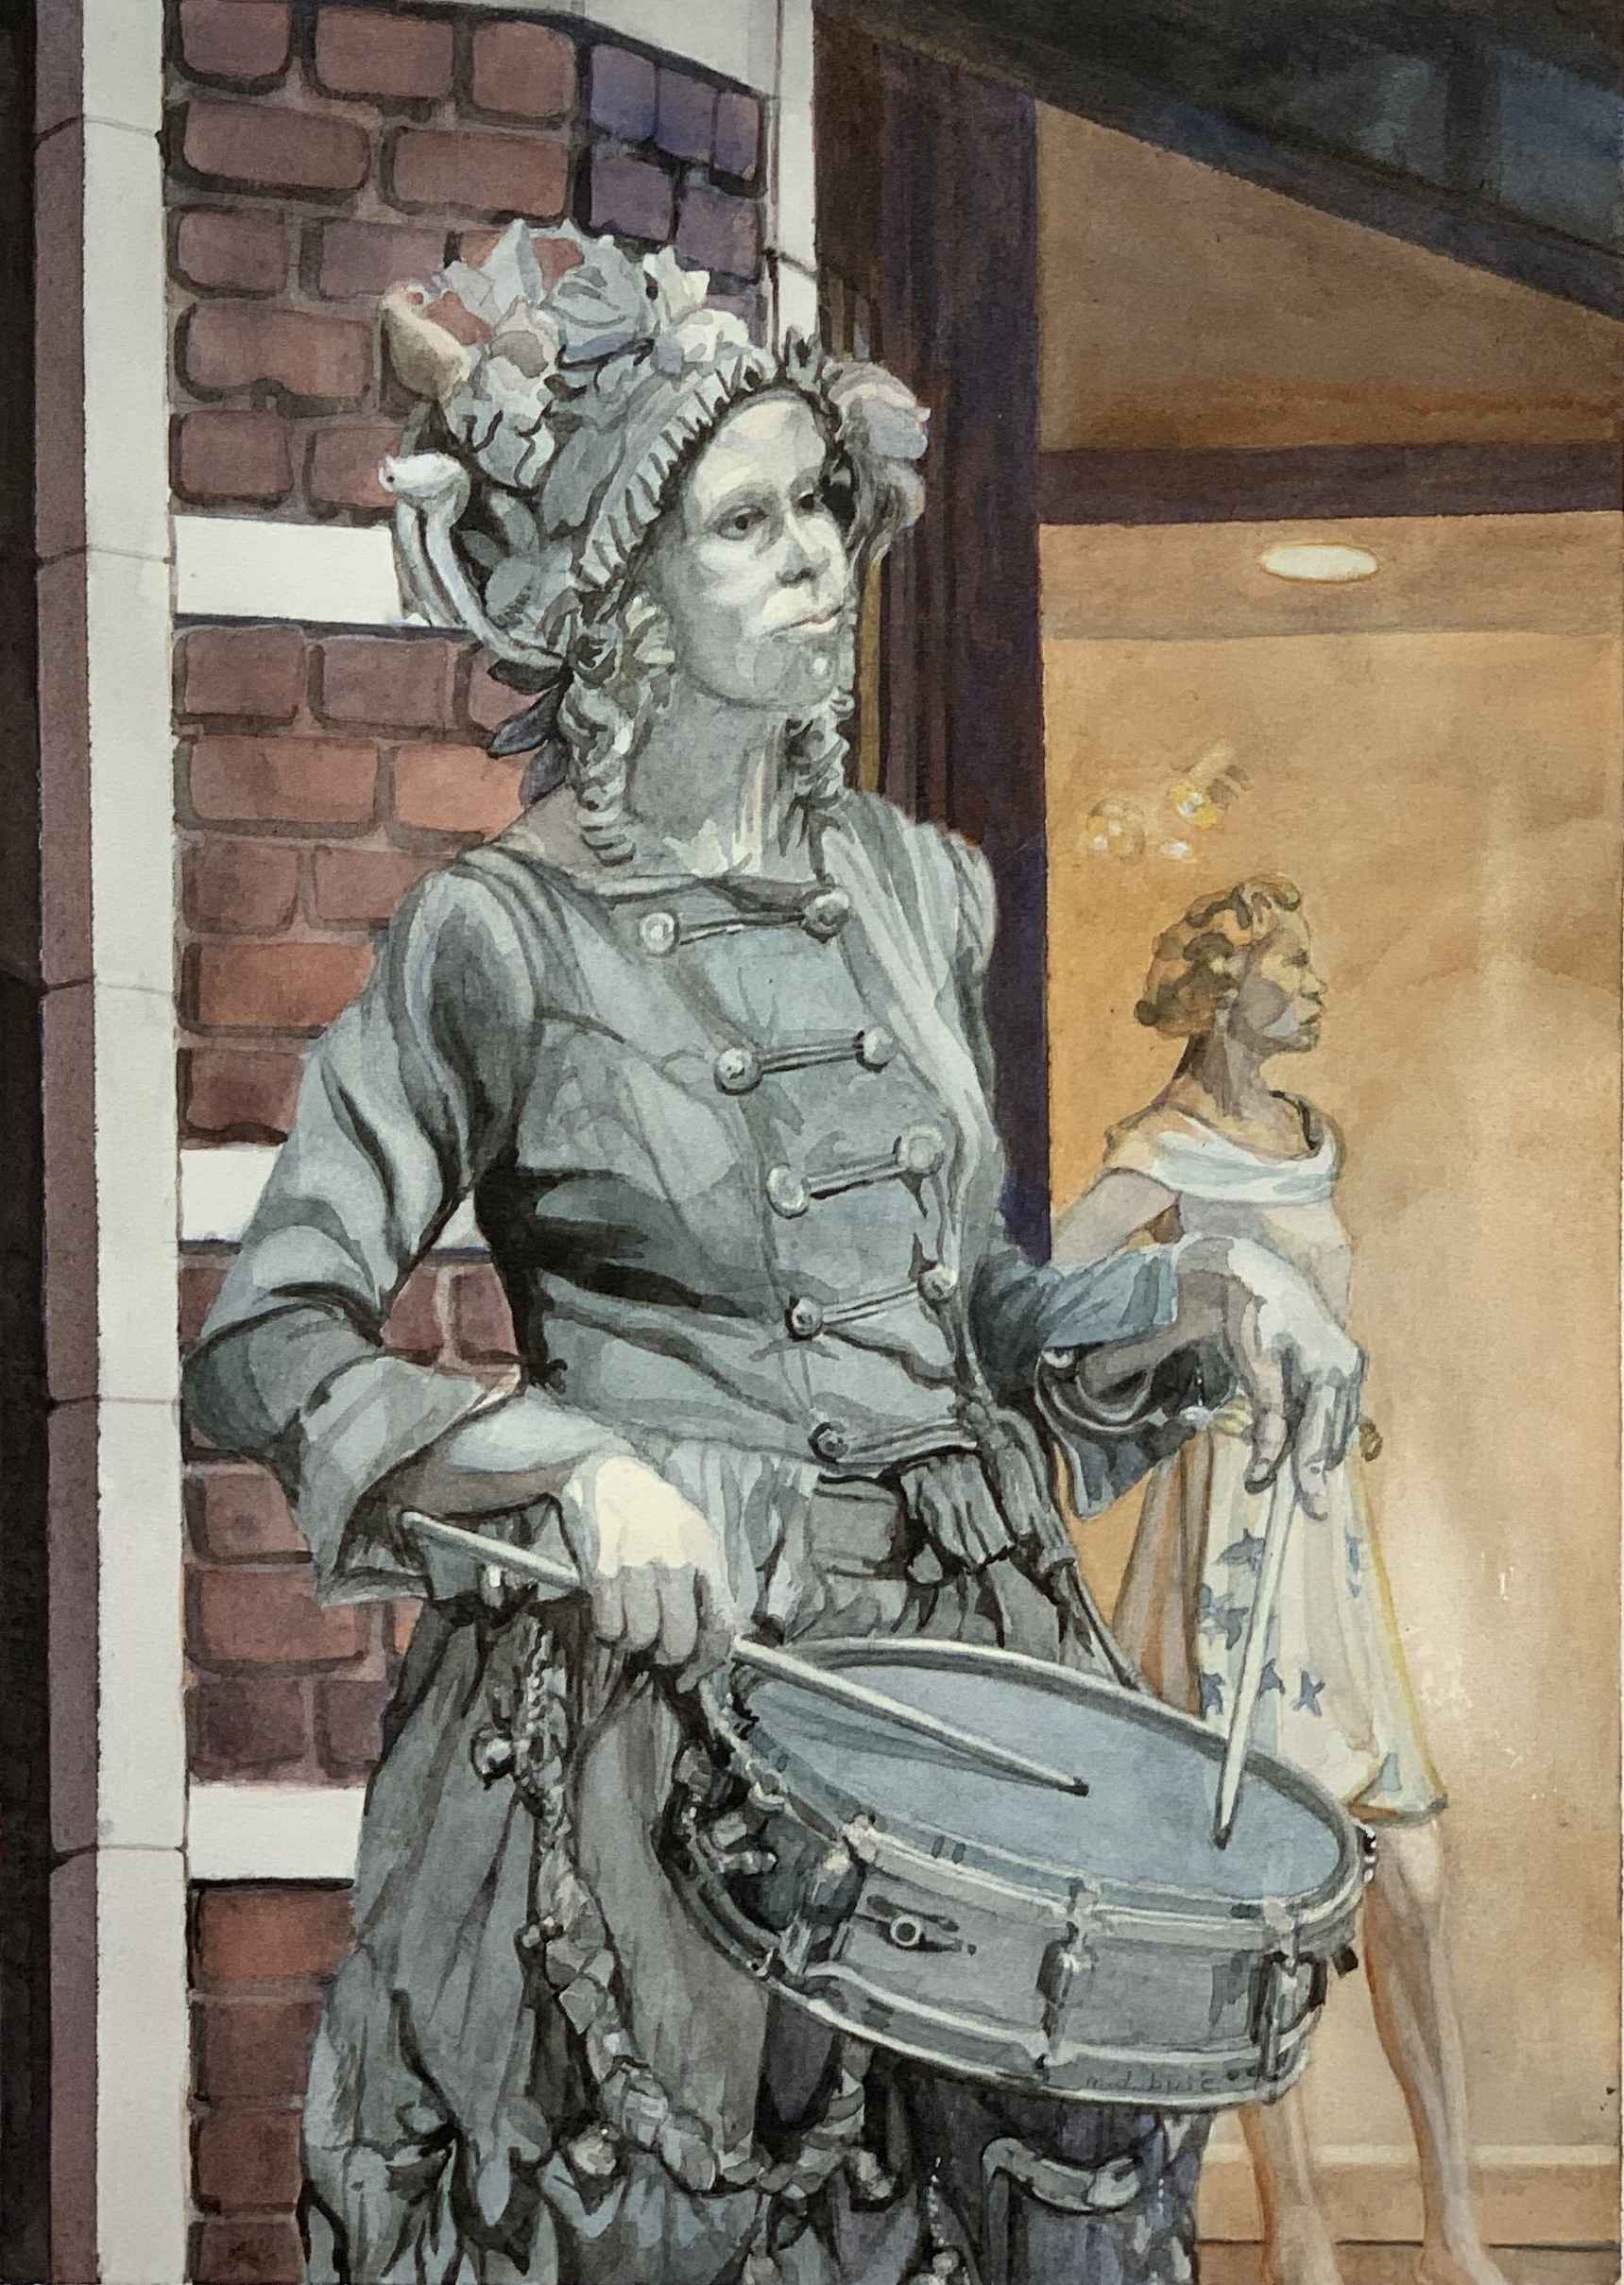 Automaton and Mannequ... by  Margaret Buie - Masterpiece Online